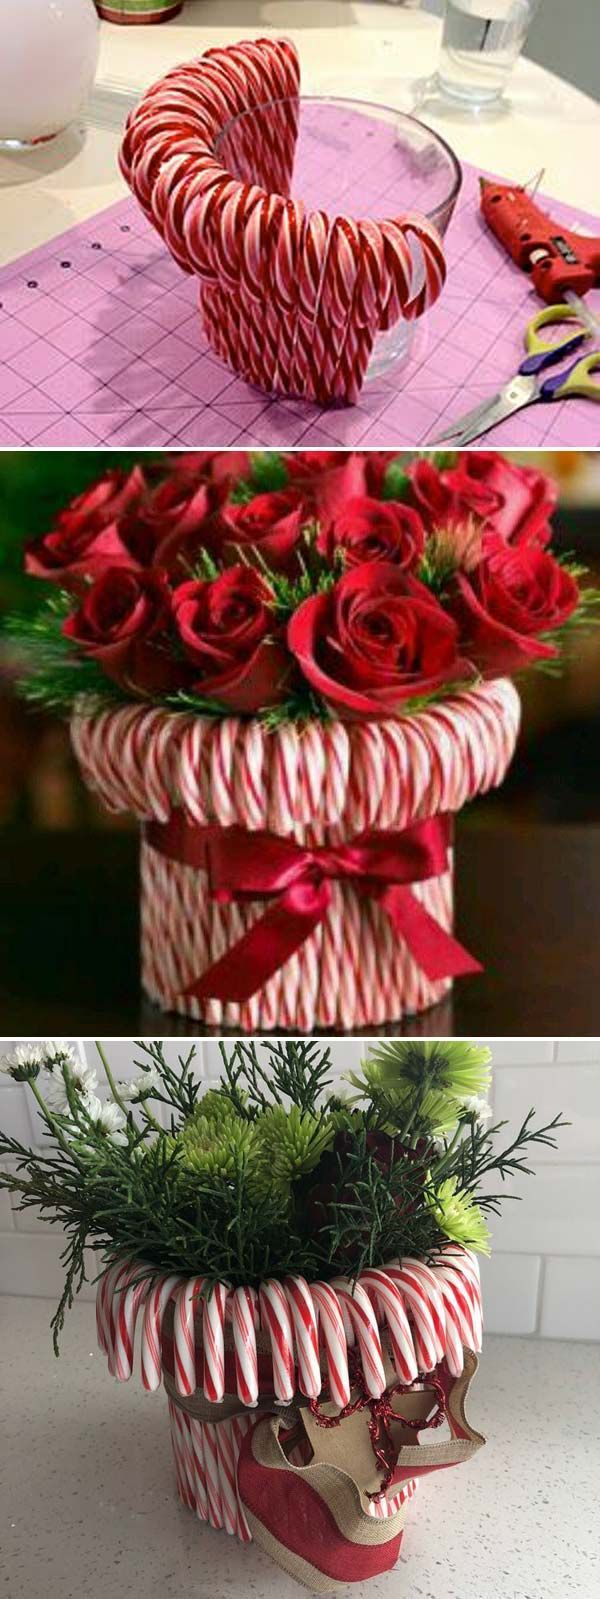 31 Awesome DIY Christmas Gift Ideas to Make You Say WOW - HomeDesignInspired #christmasgiftideas Stretch a rubber band around a vase, then stick in candy canes until you can't see the vase. Fill with red and white roses or carnations.